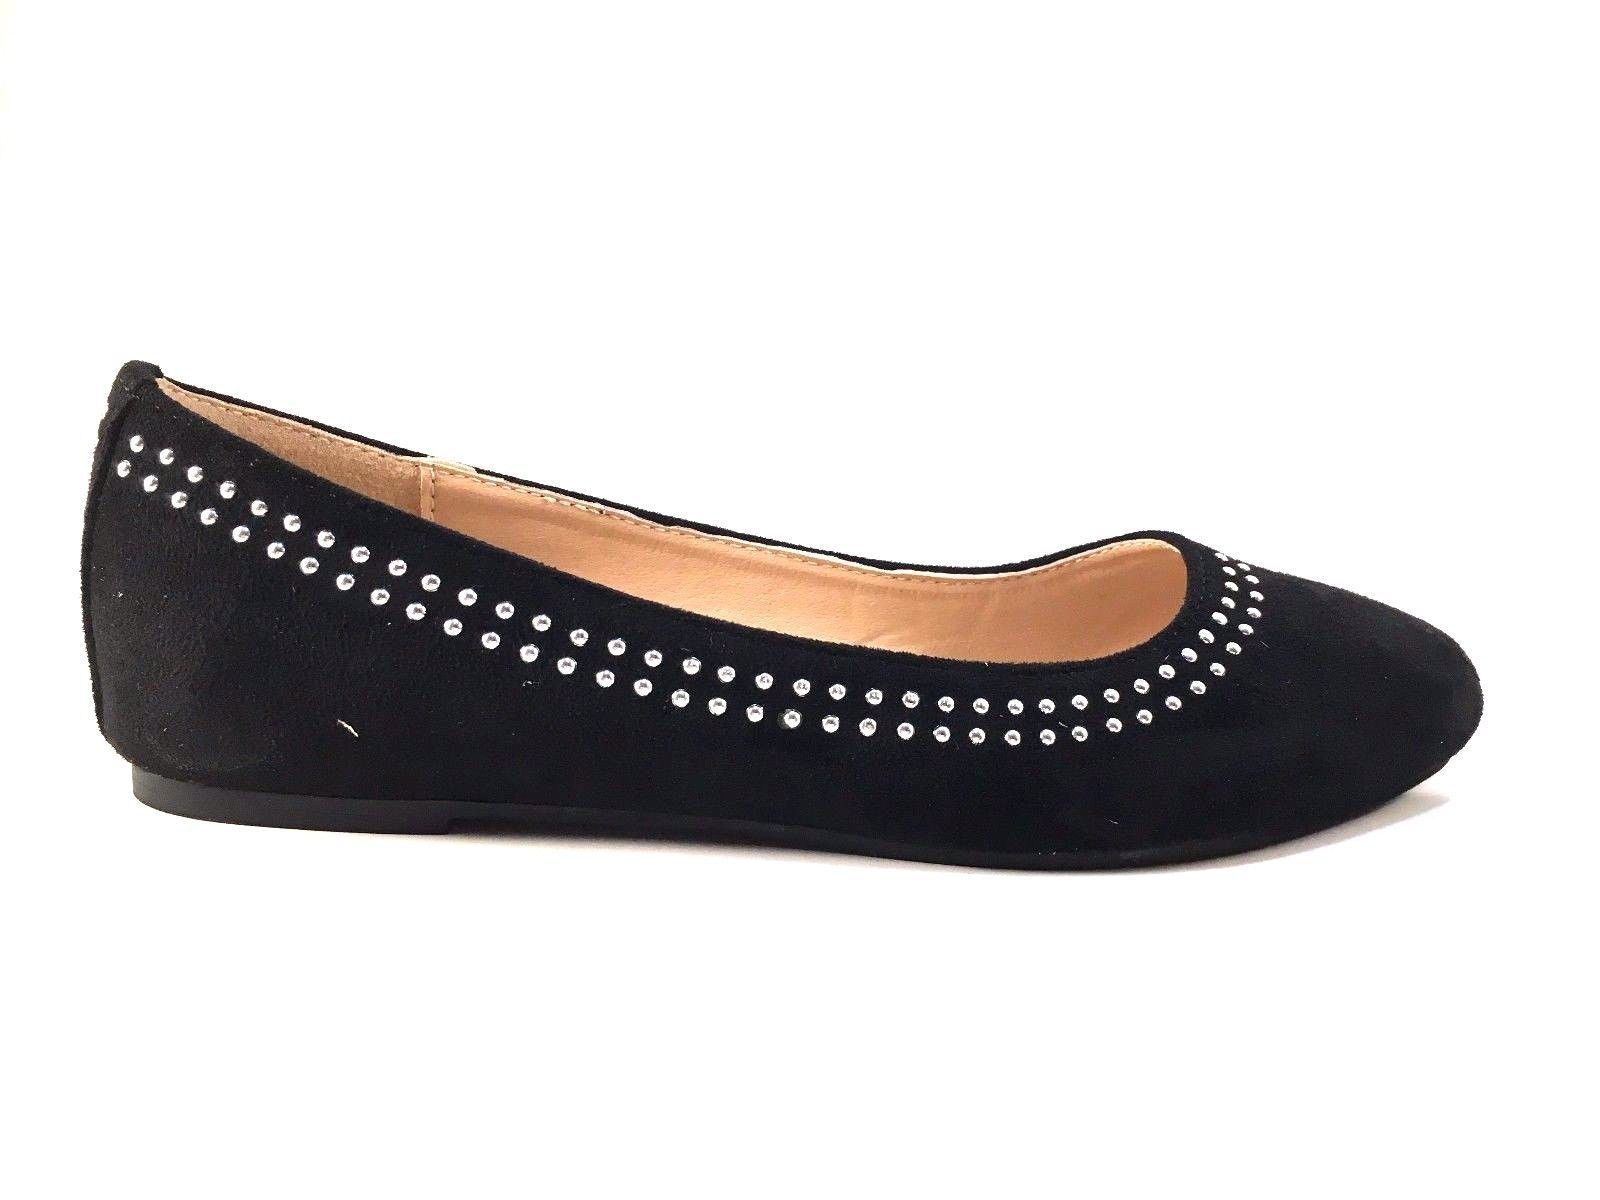 Wanted Rumors Black Suede Round Toe Ballet Flats